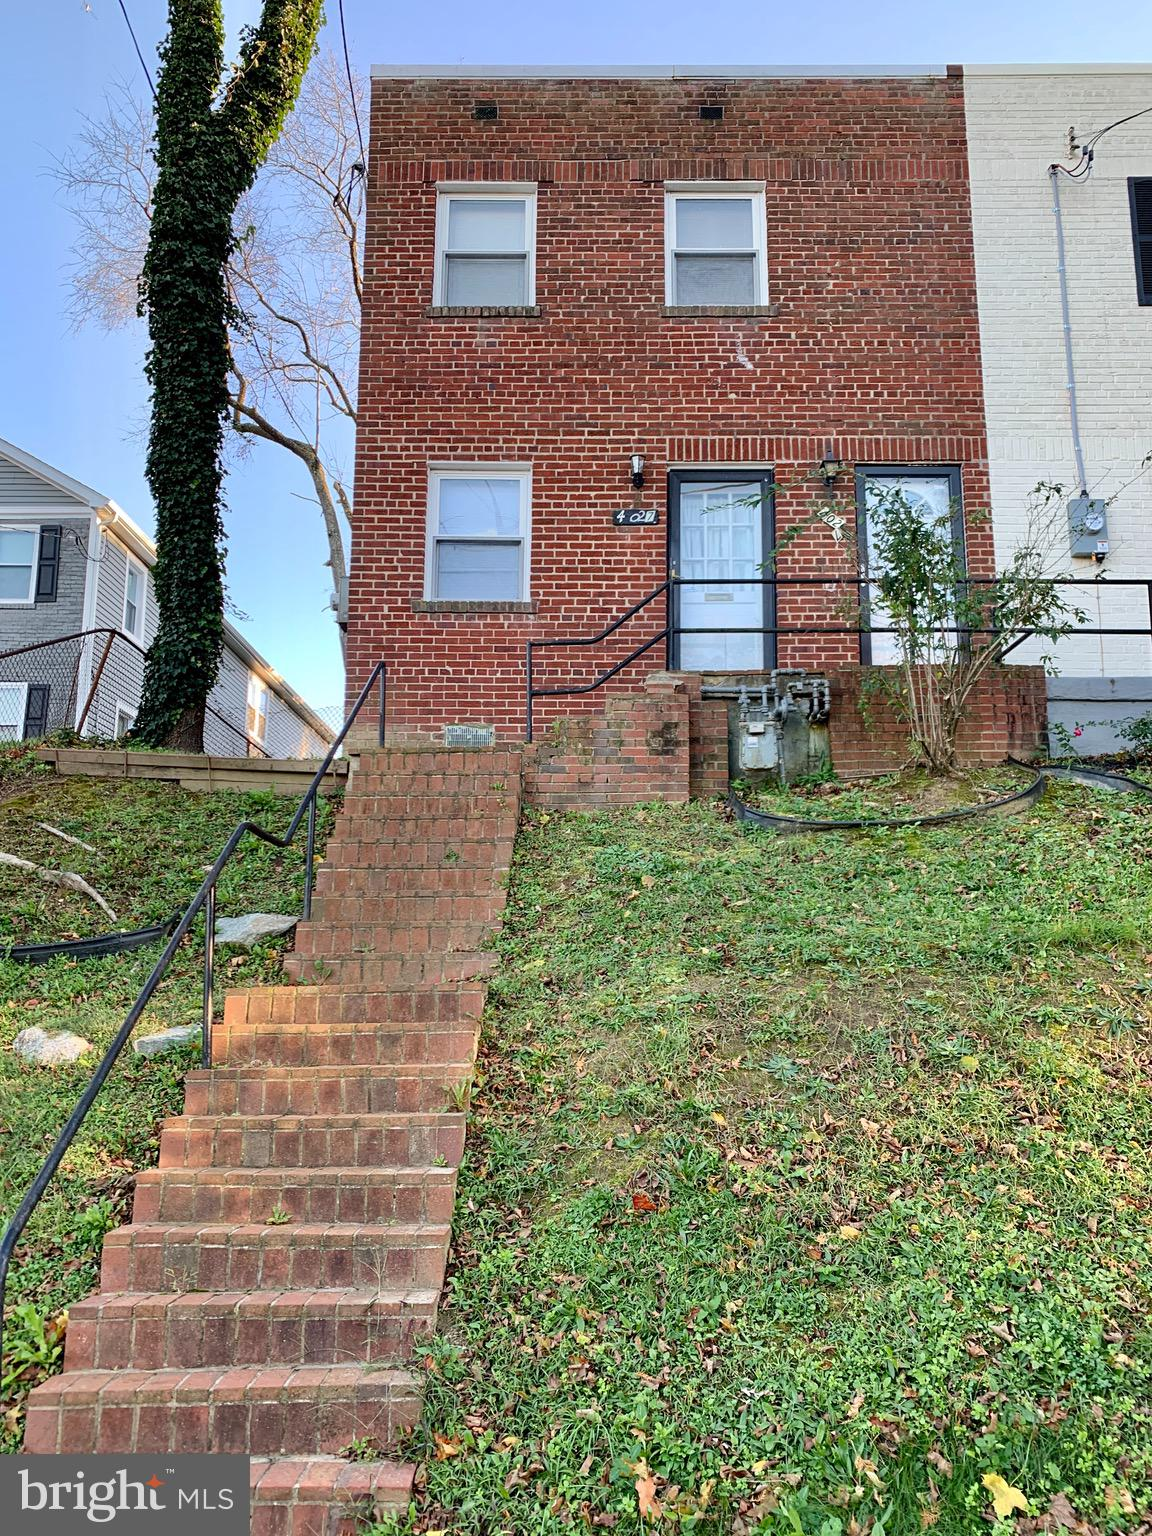 INVESTORS ALERT! This is an excellent opportunity to invest in your own duplex near Fort Dupont Park